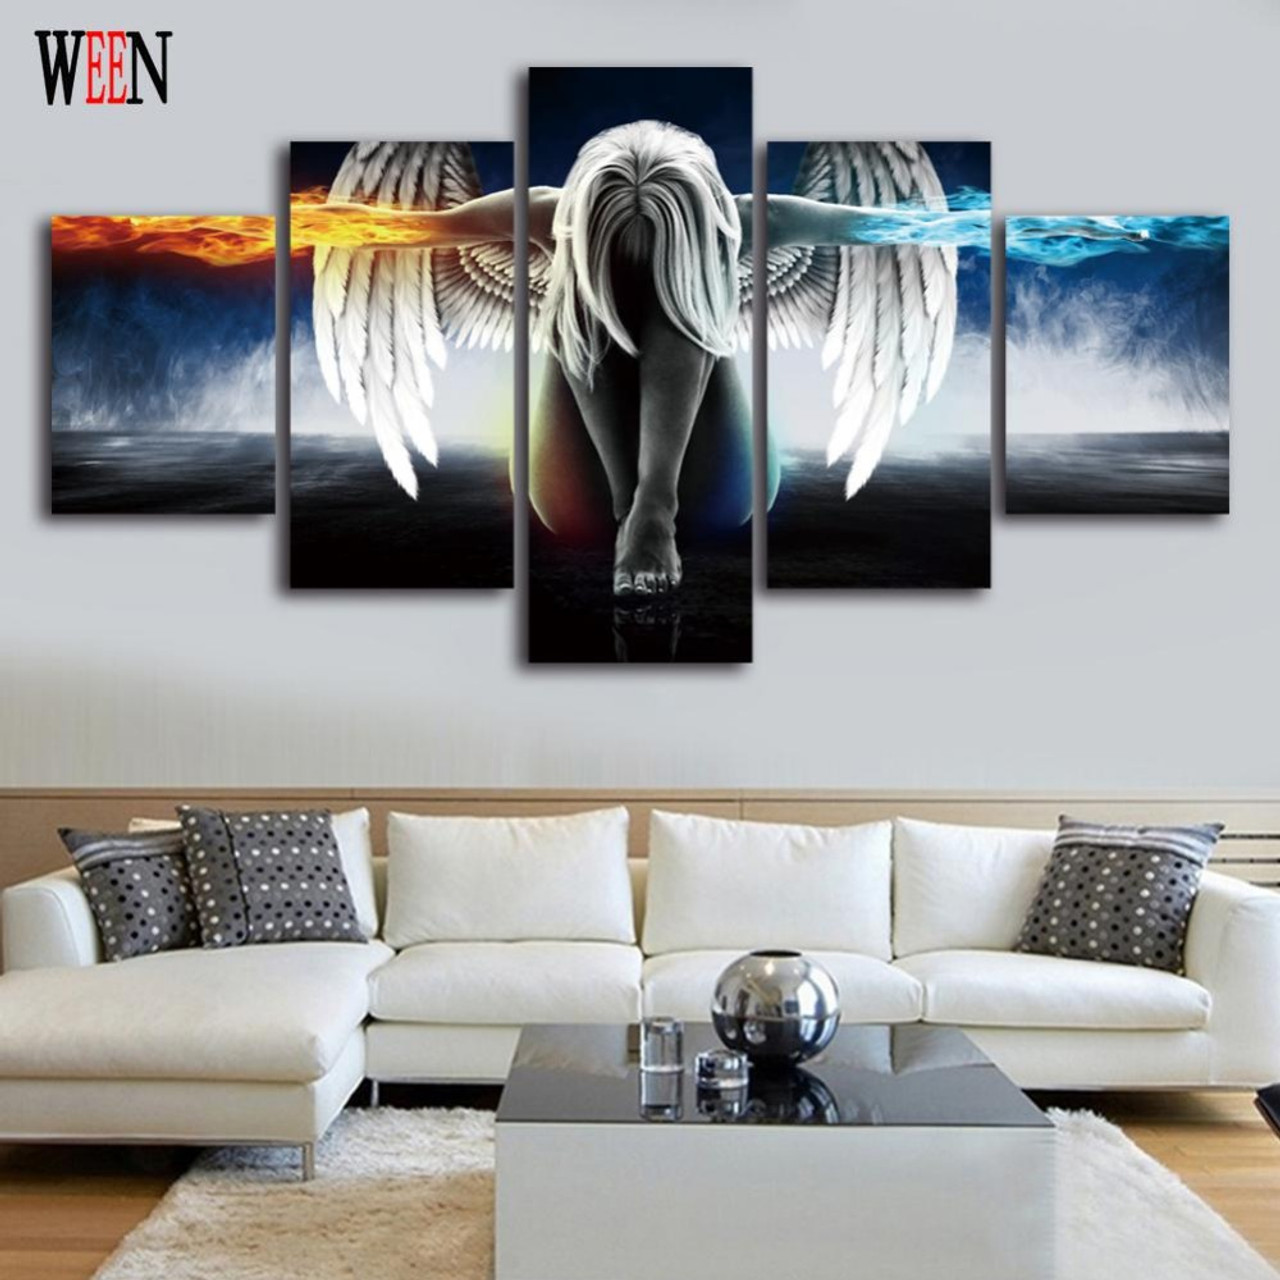 WEEN Angel Cuadros Decoracion 5 piece Wall Pictures Canvas Art For ...